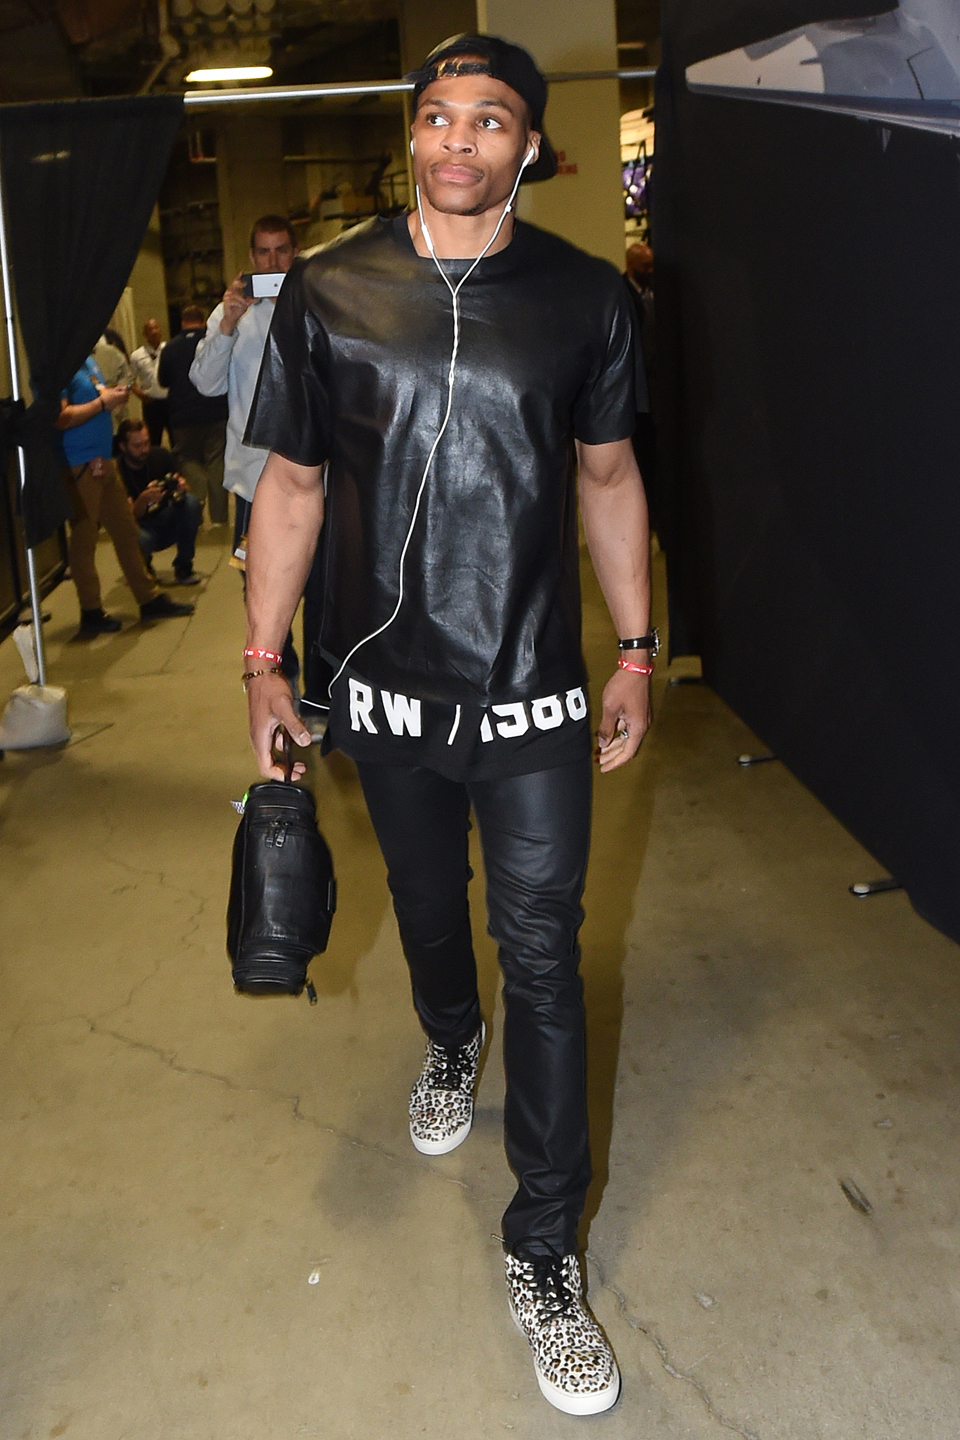 Russell Westbrook #0 of the Oklahoma City Thunder arrives before the game against the Golden State Warriors in Game Five of the Western Conference Finals during the 2016 NBA Playoffs on May 26, 2016 at ORACLE Arena in Oakland, California.